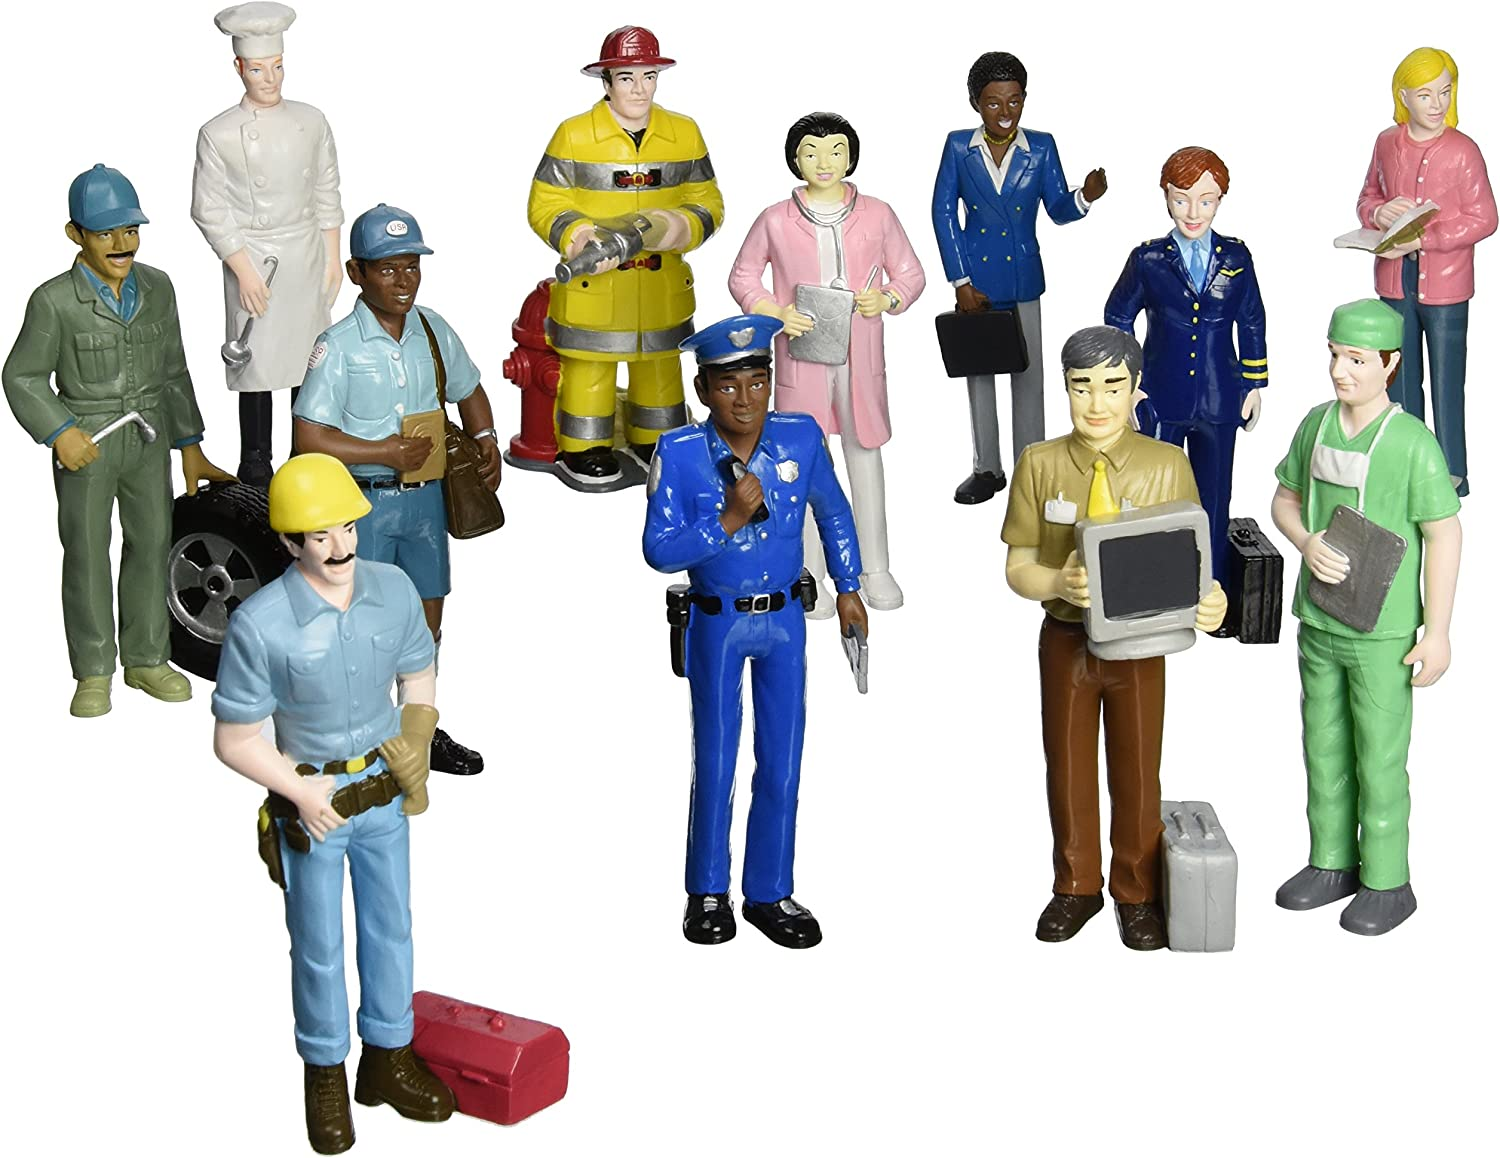 Card Player Funny vocational profession Figures Collection 14 cm New